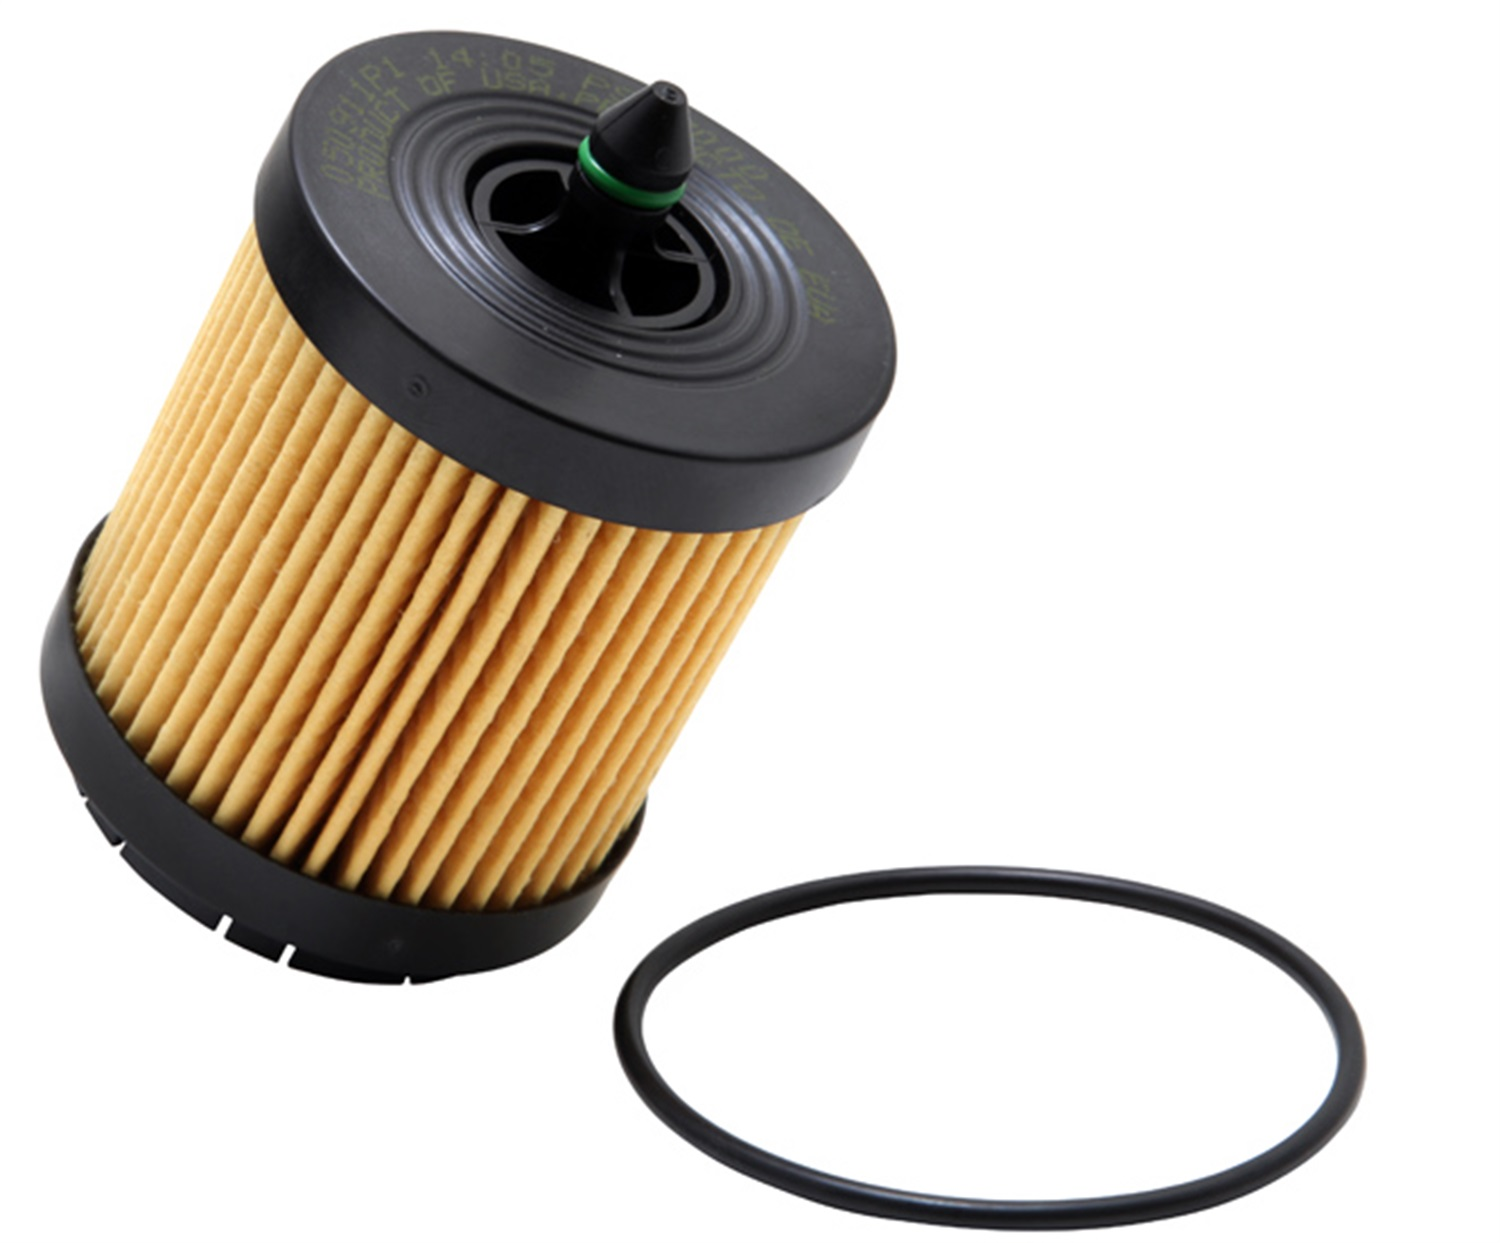 K&amp;N Filters PS-7000 High Flow <em>Oil</em> <em>Filter</em>